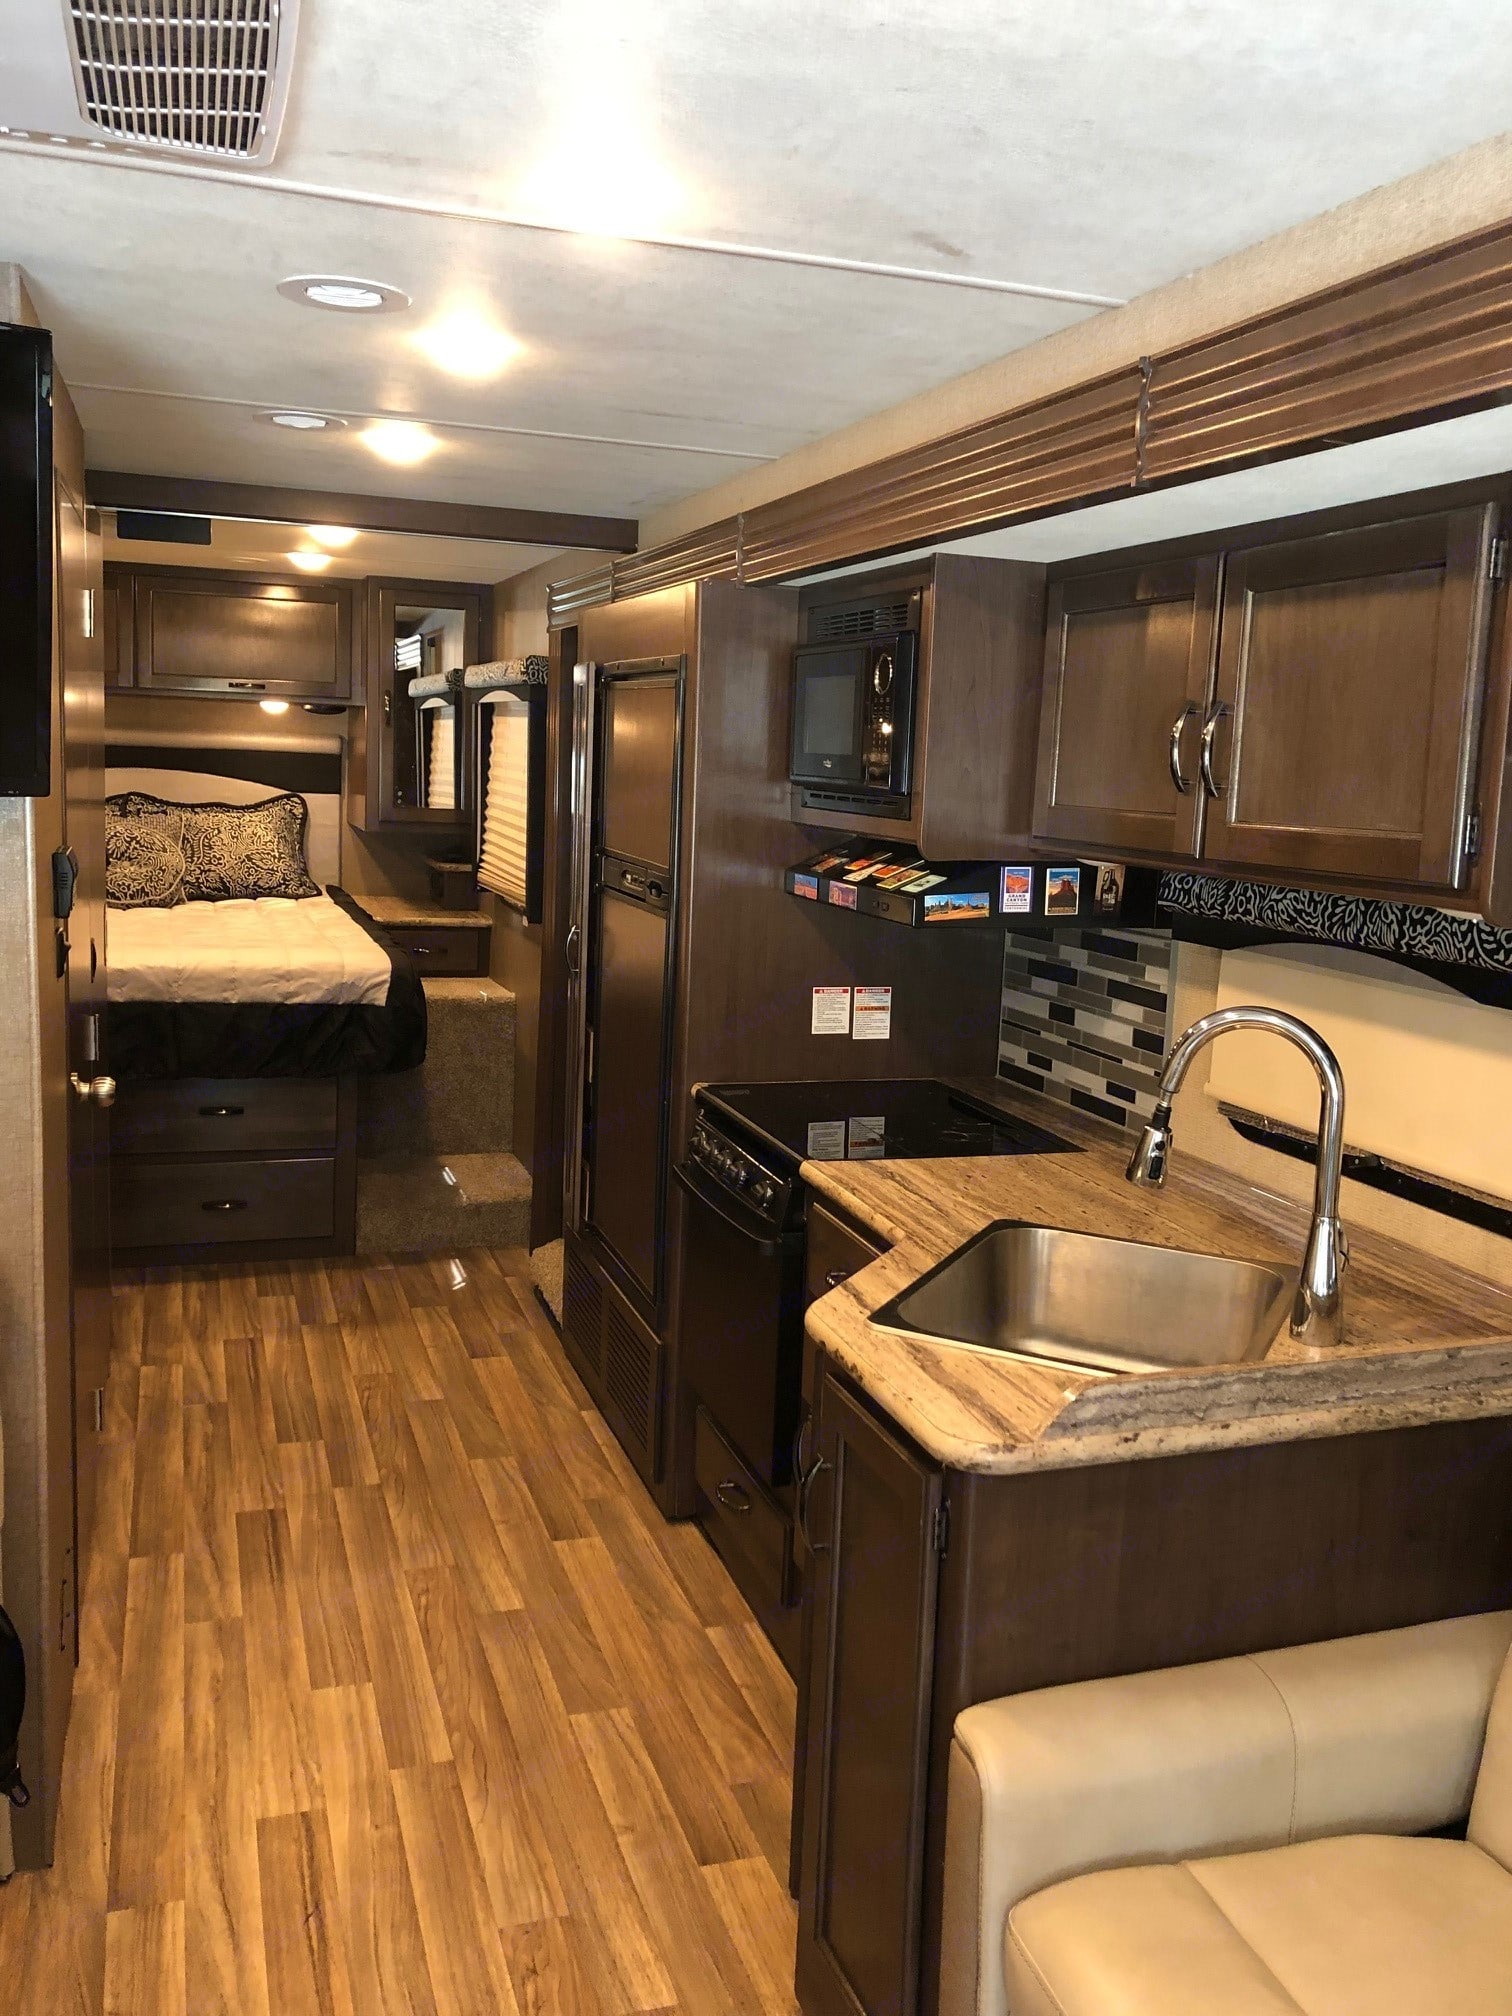 Interior view of coach with wall slide out. Comfortably spacious, similar to a small apartment - that you can drive! This view shows kitchen including refrigerator and microwave, plenty of storage/cabinet space, and the master bedroom at the rear of the coach.. Thor Motor Coach A.C.E 2018